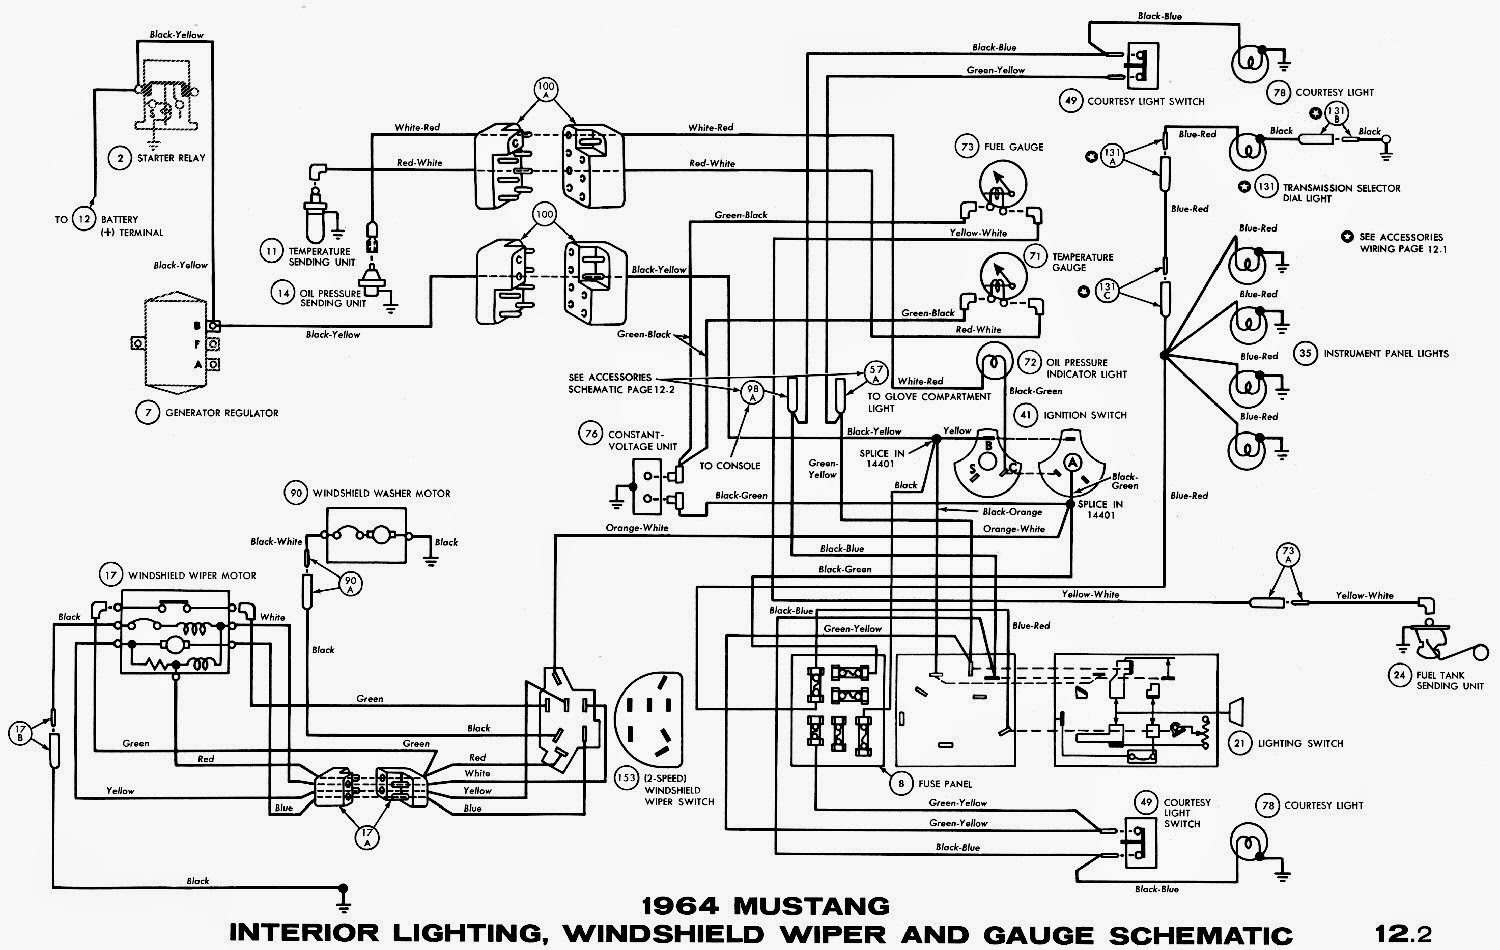 Harley Softail Wiring Diagram. Diagrams. Wiring Diagram Images